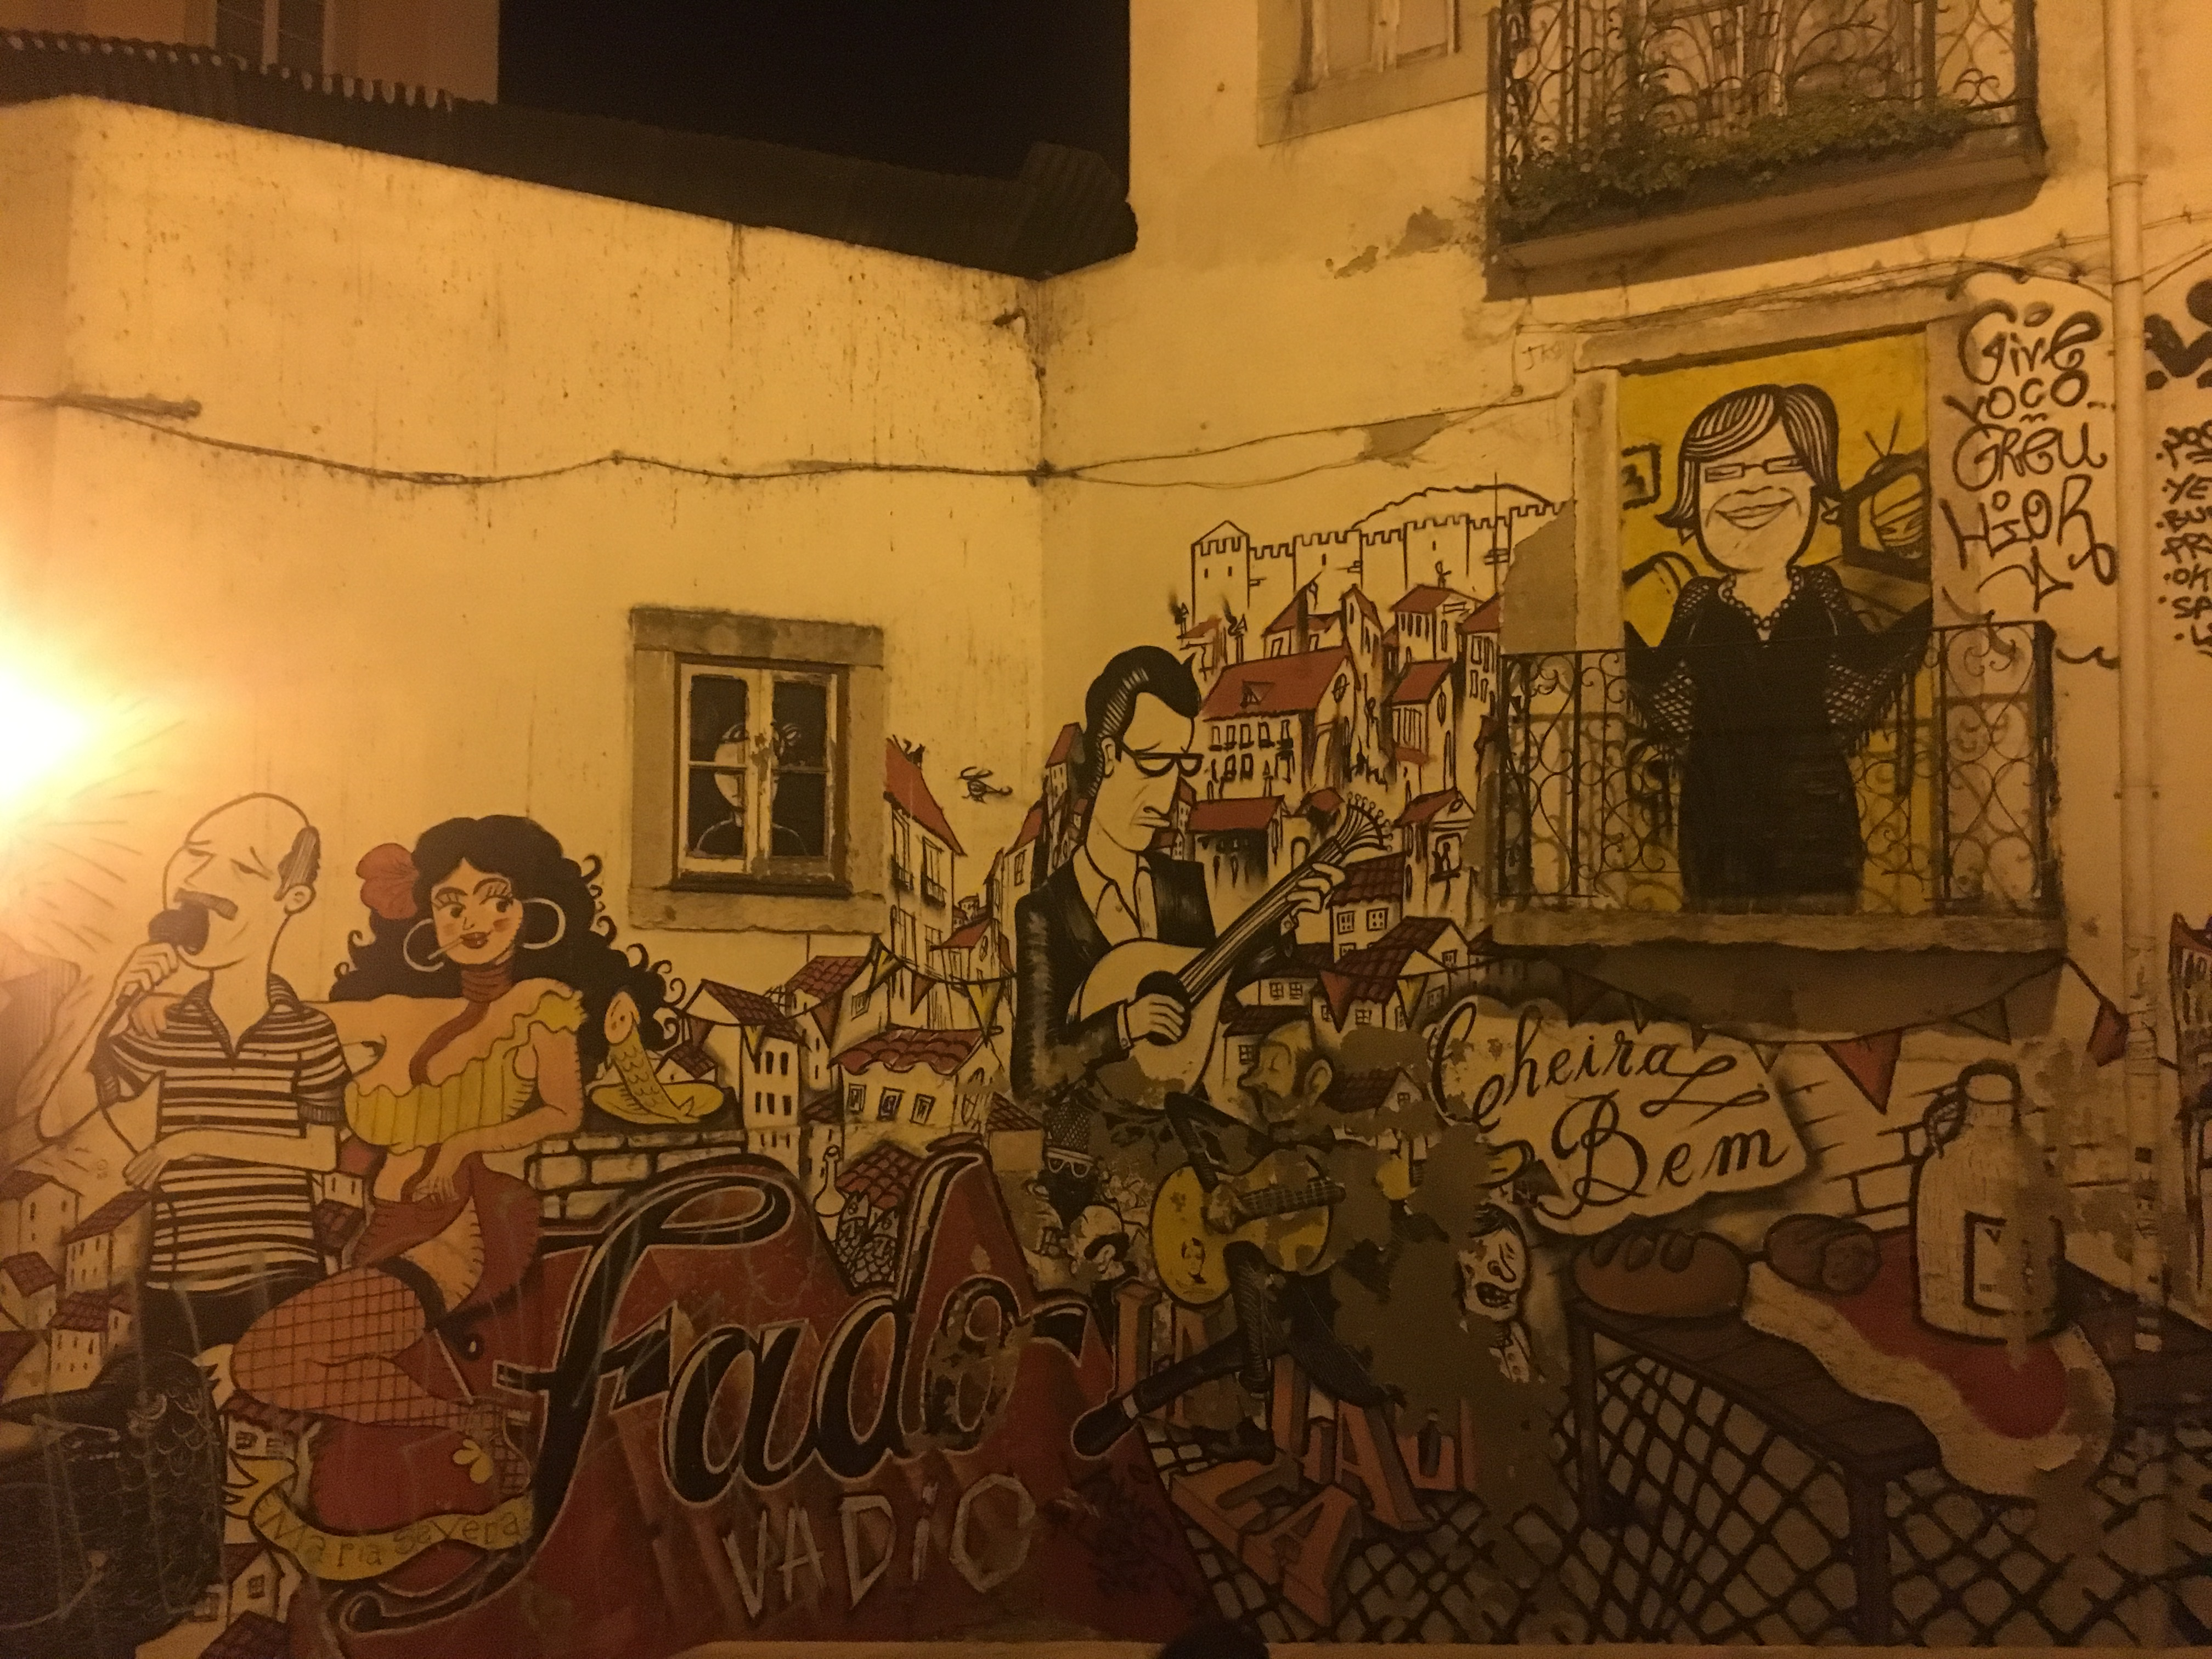 A mural of fado images